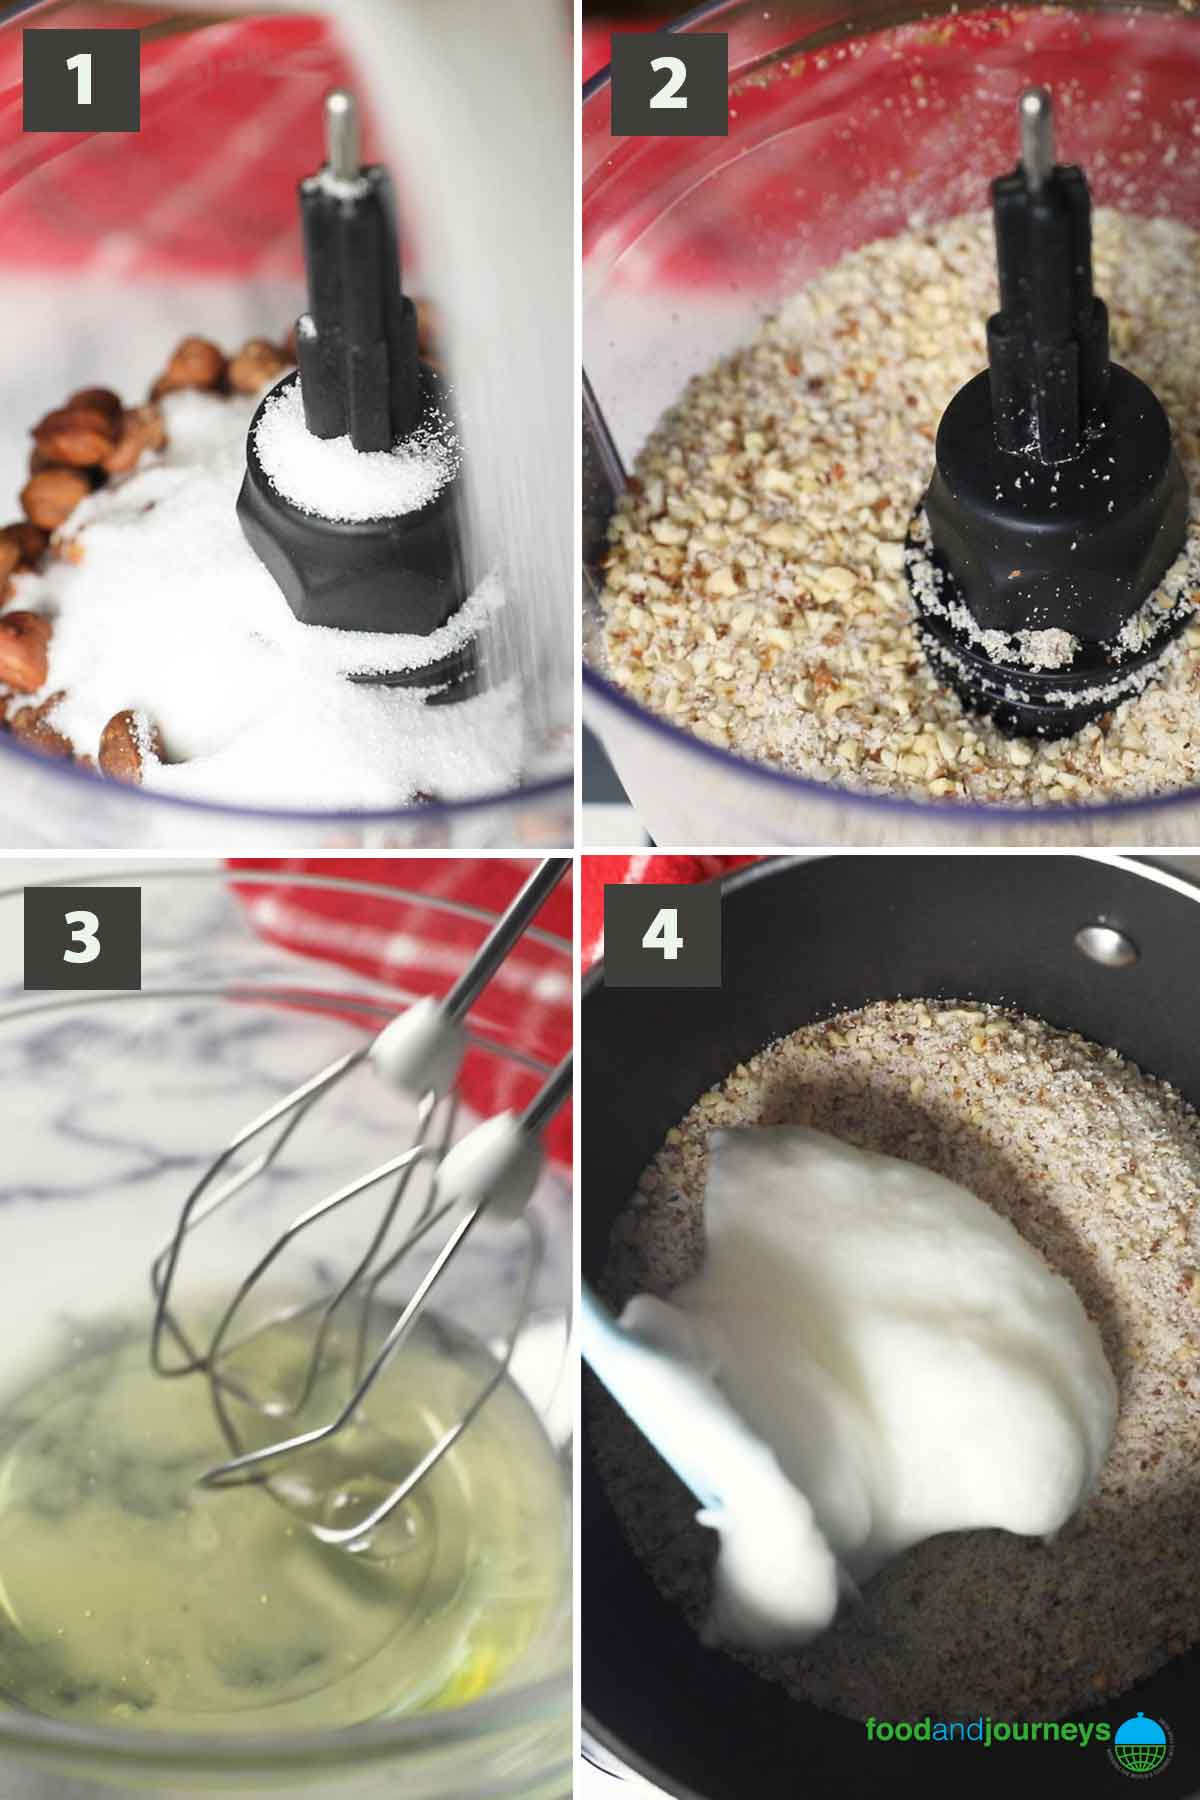 First part of a collage of images showing the step by step process on how to make hazelnut meringue cookies.